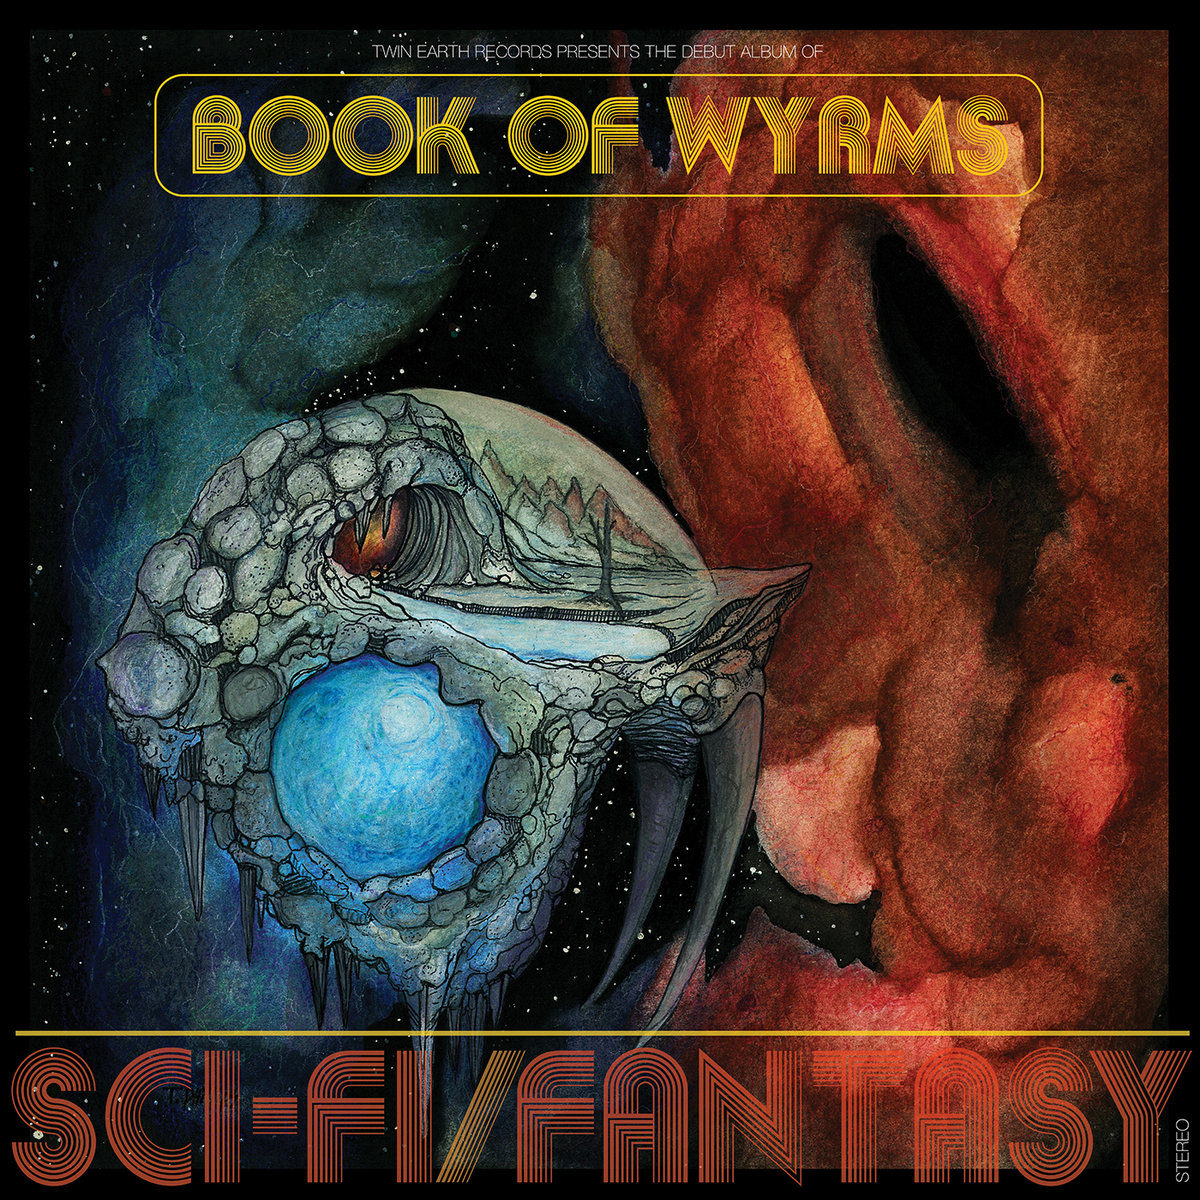 11. Book Of Wyrms - Sci-fiFantasy